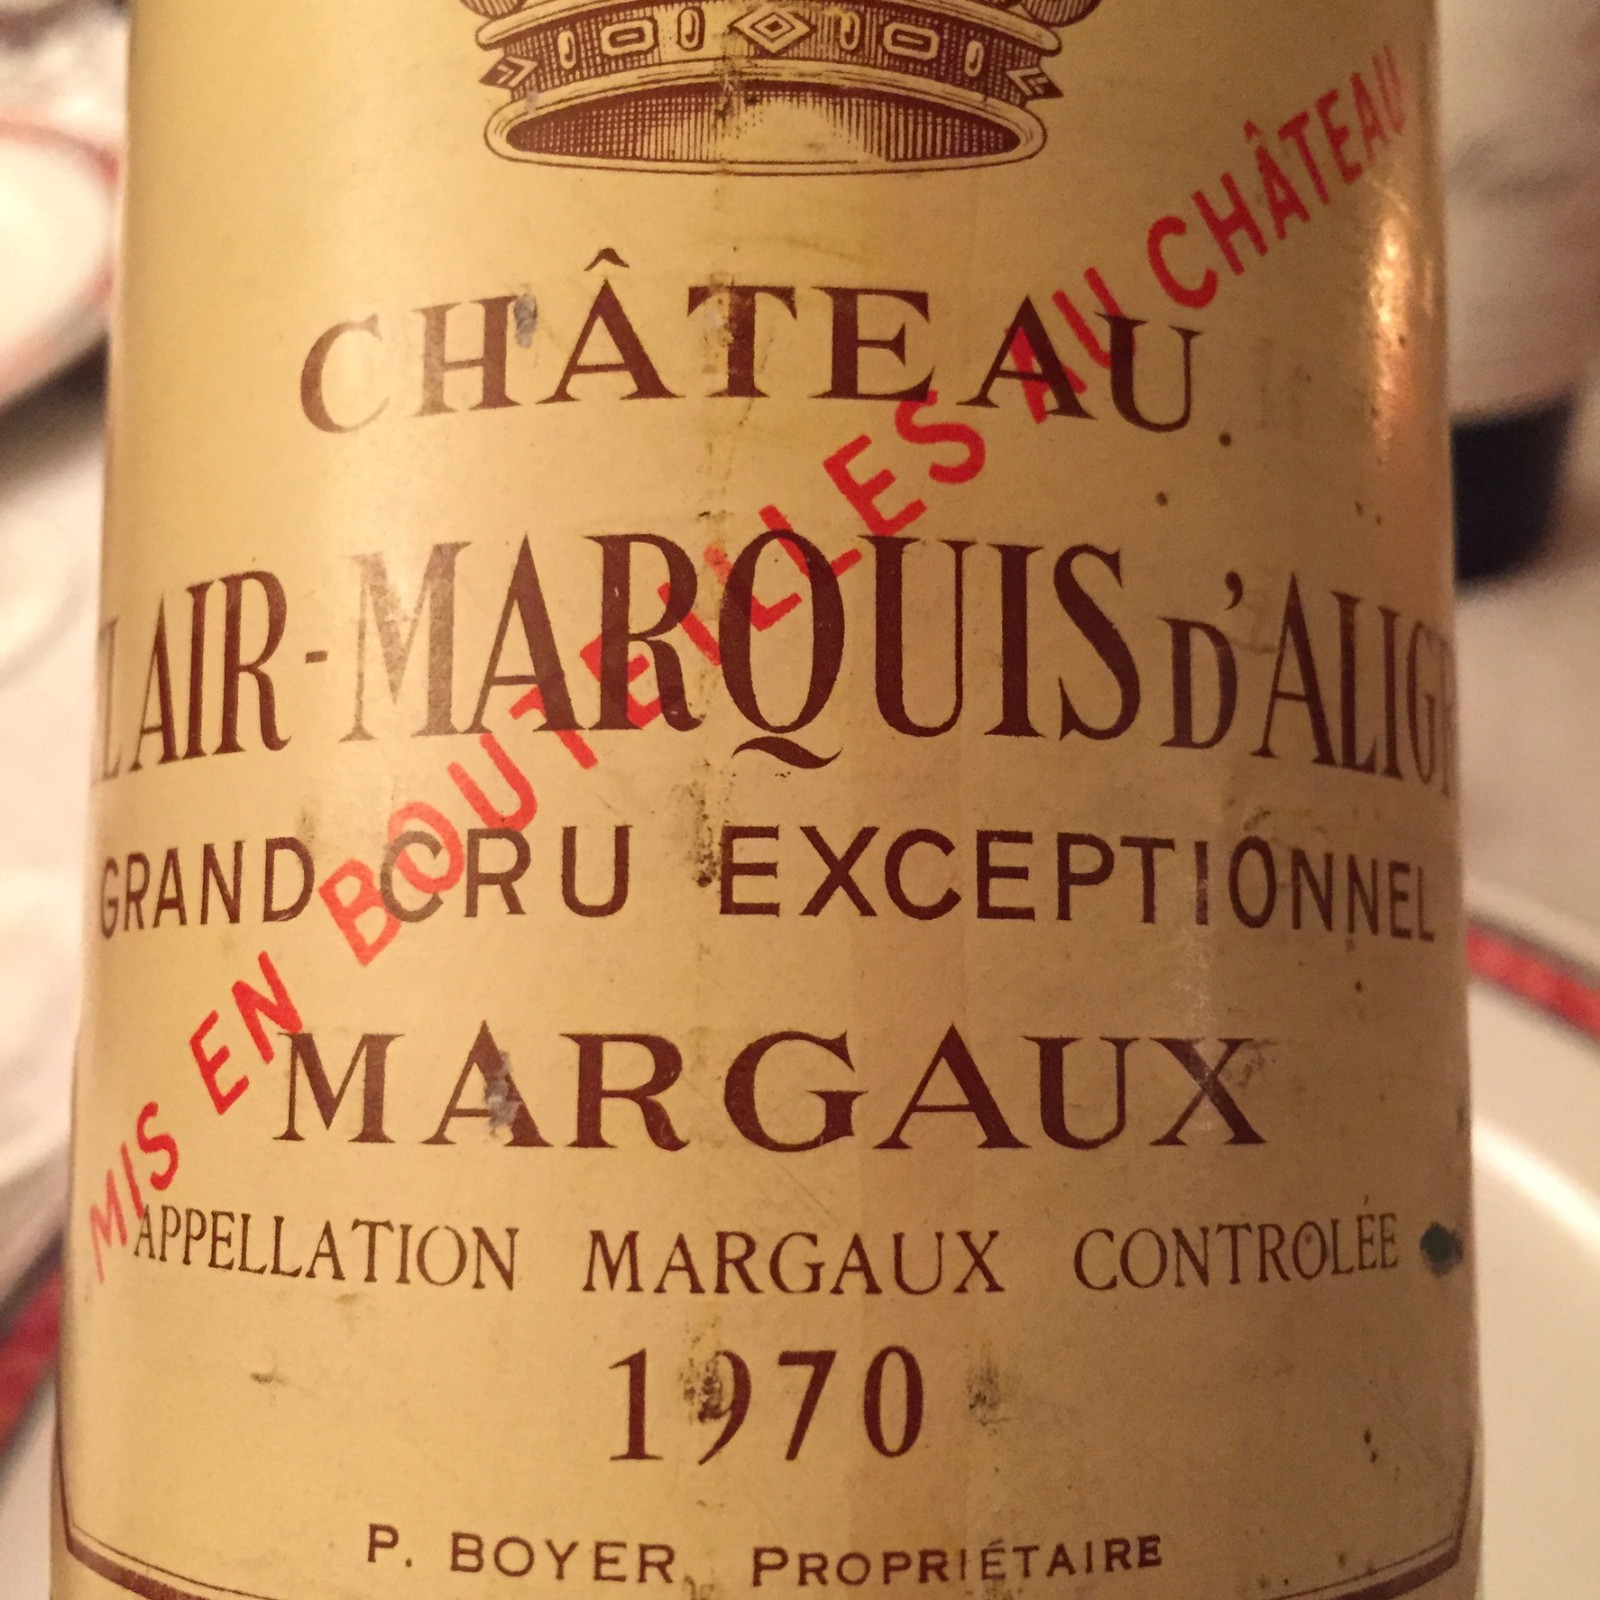 Wow! Wine from the year I was born. That's quite a welcome.